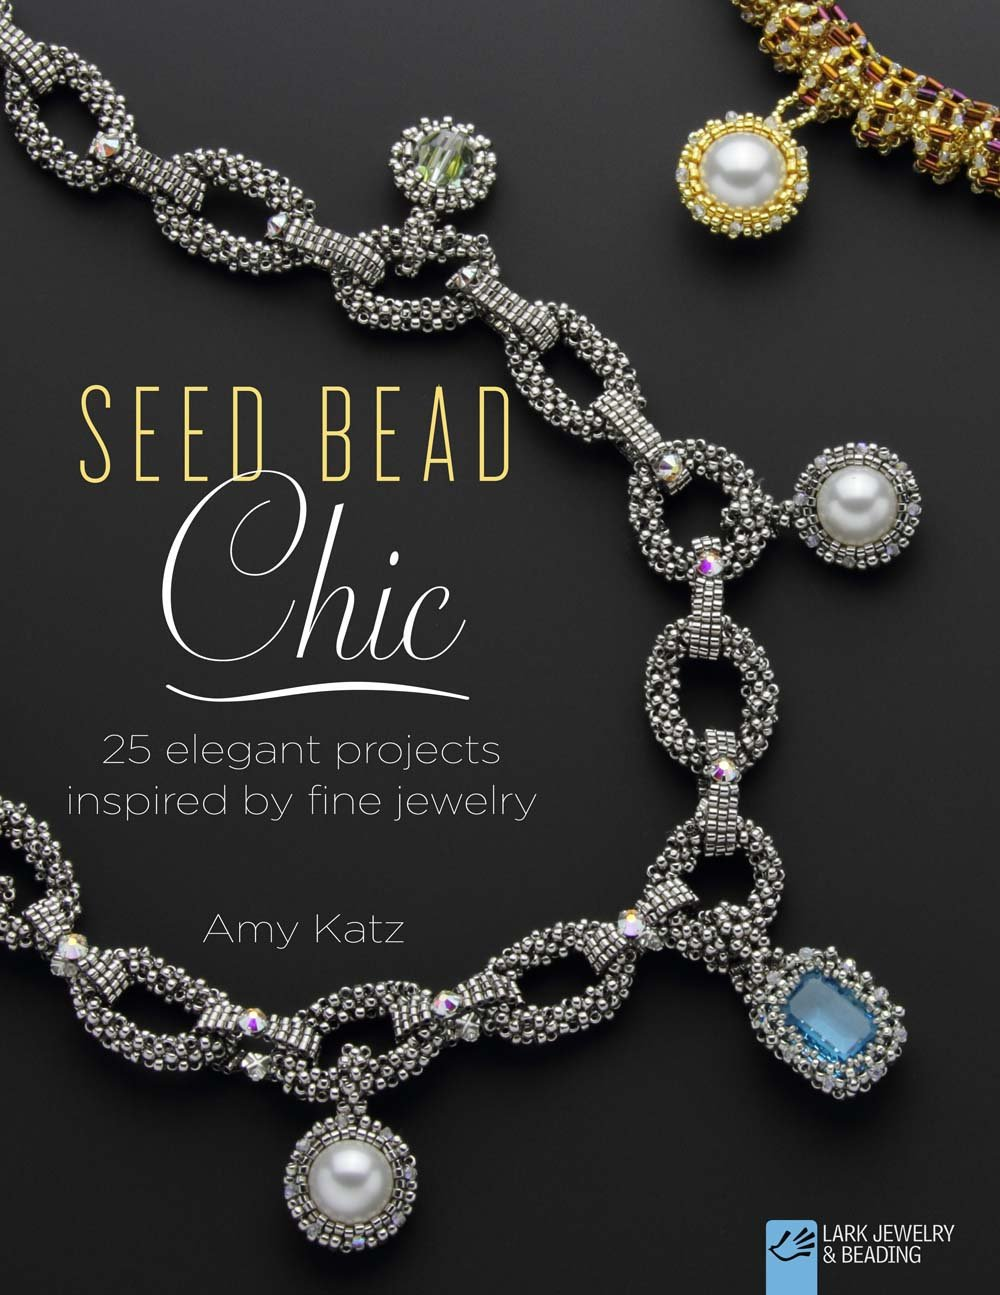 Seed Bead Chic: 25 Elegant Projects Inspired by Fine Jewelry (Lark Jewelry & Beading Bead Inspirations) by Lark Books